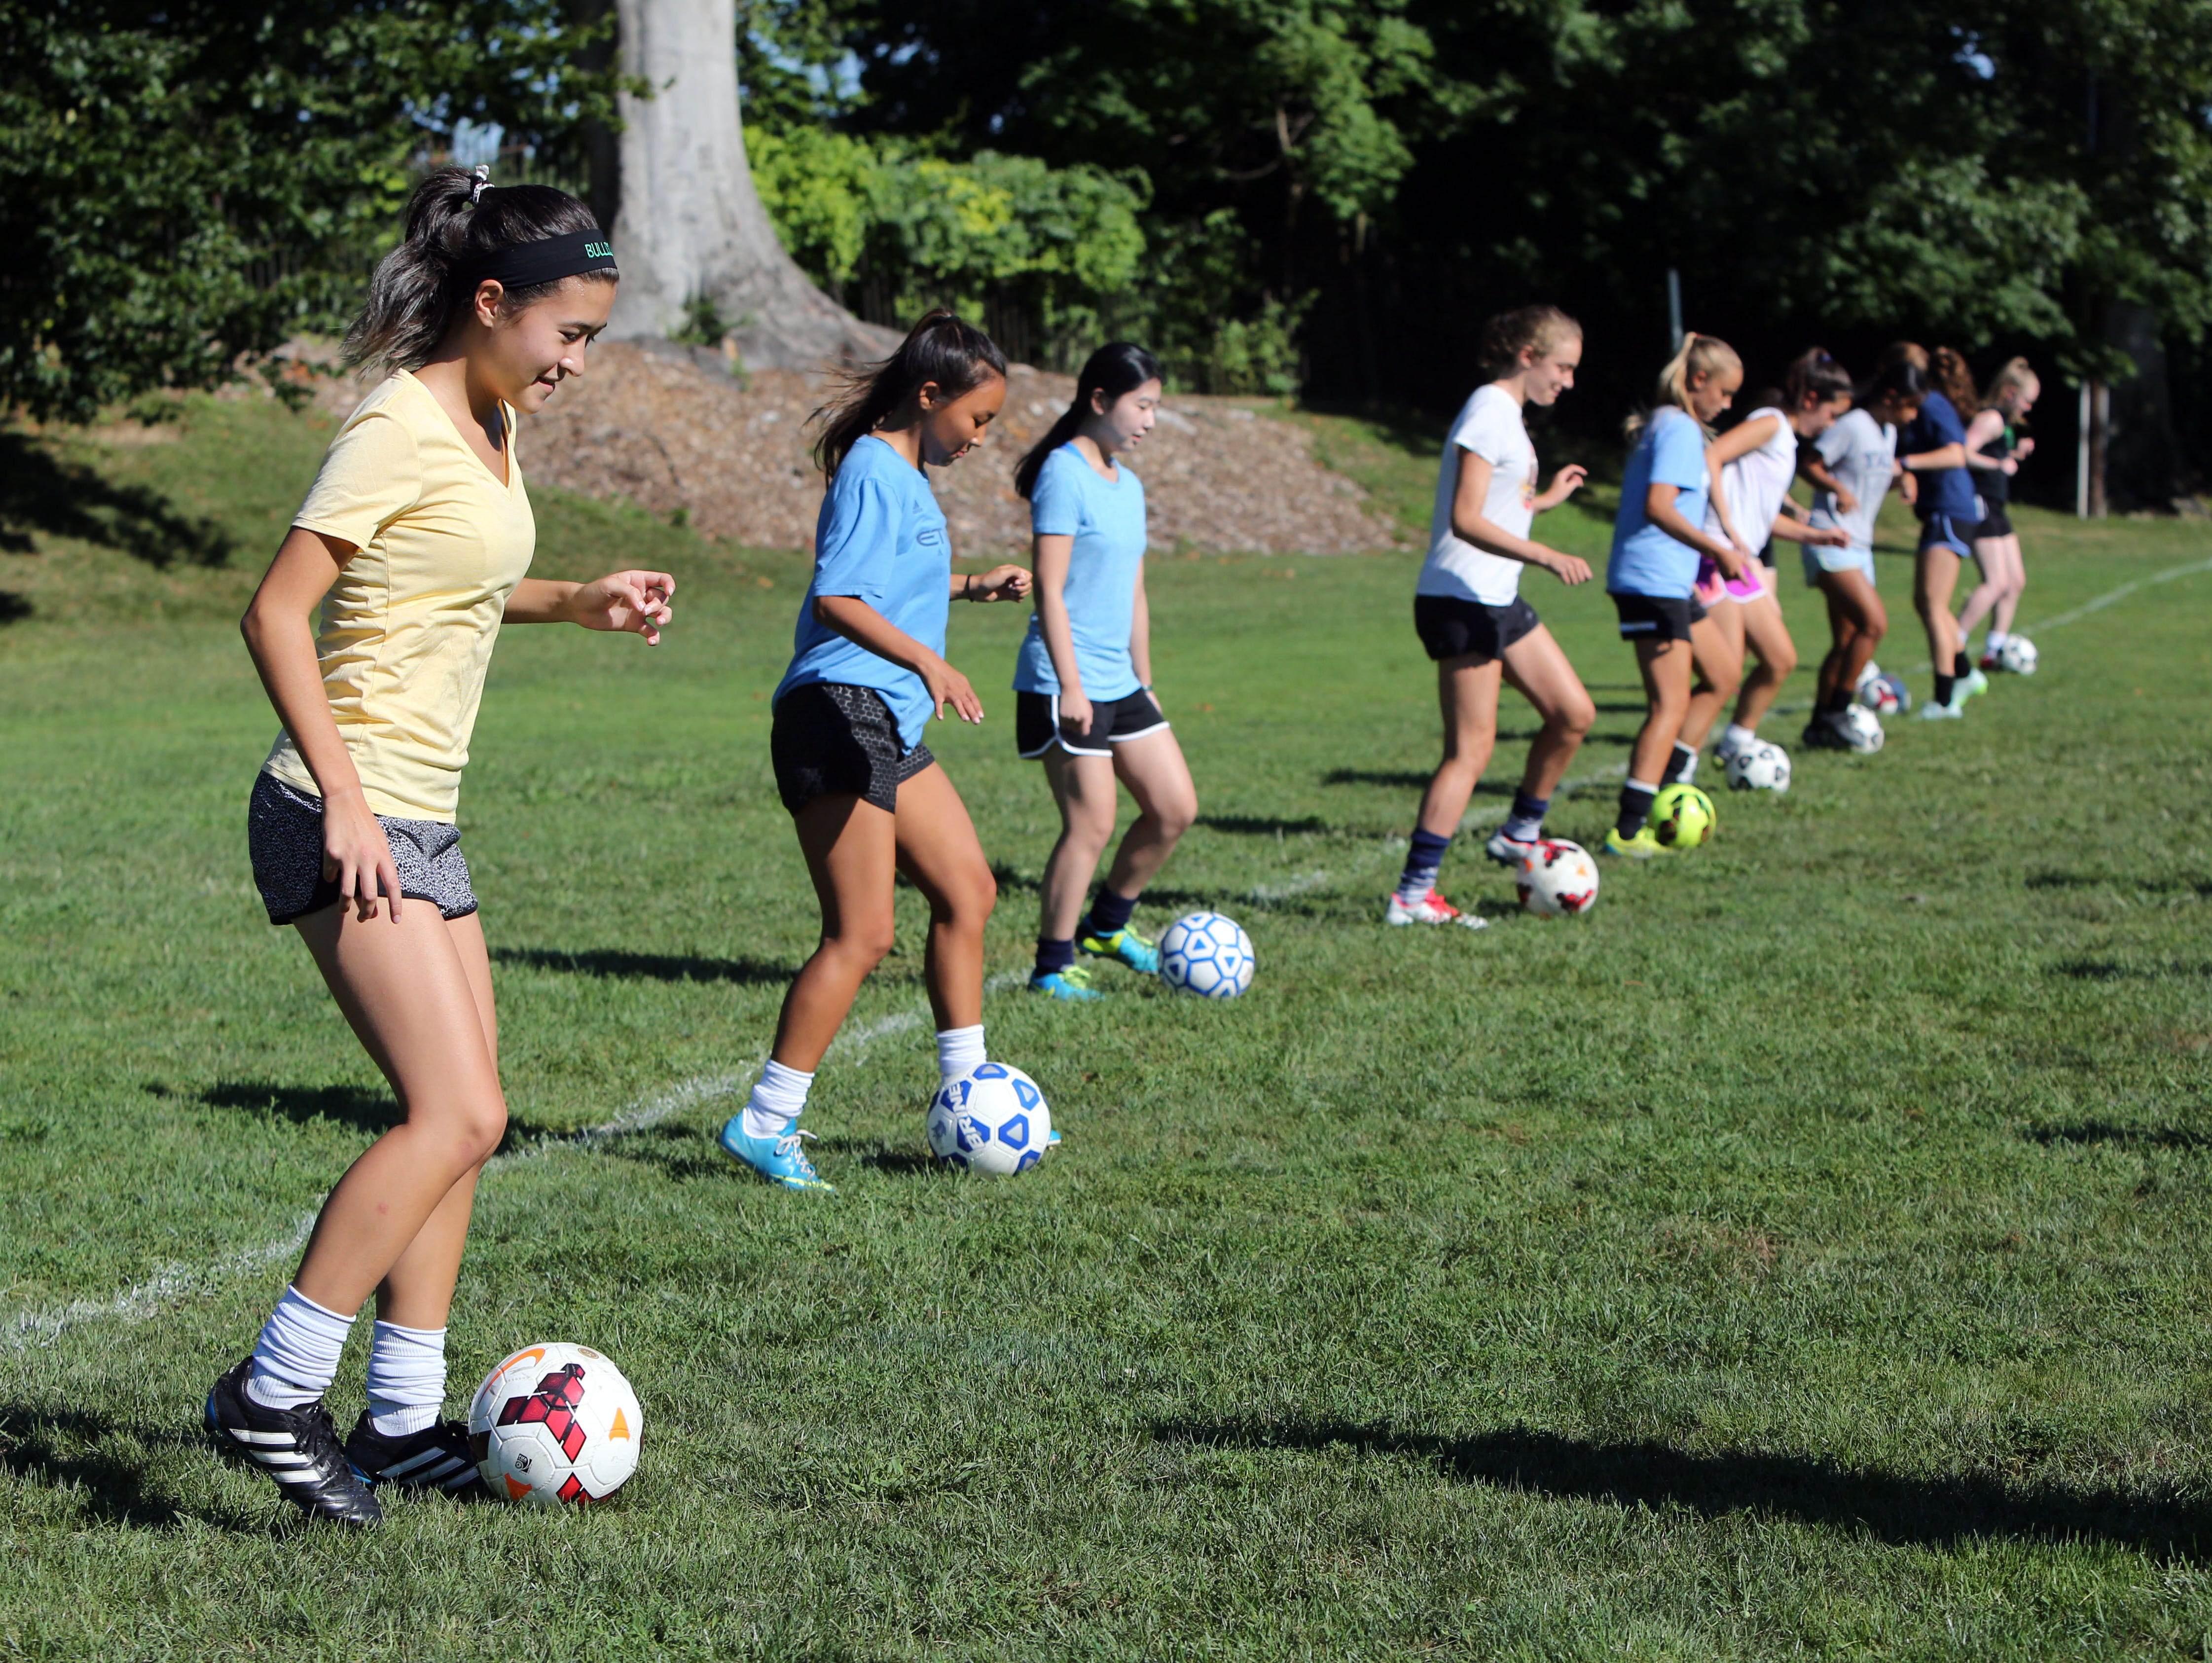 Irvington soccer co-captain Maxine Bell, left, runs through drills with the team during practice Aug. 24, 2016 at Memorial Field in Irvington.